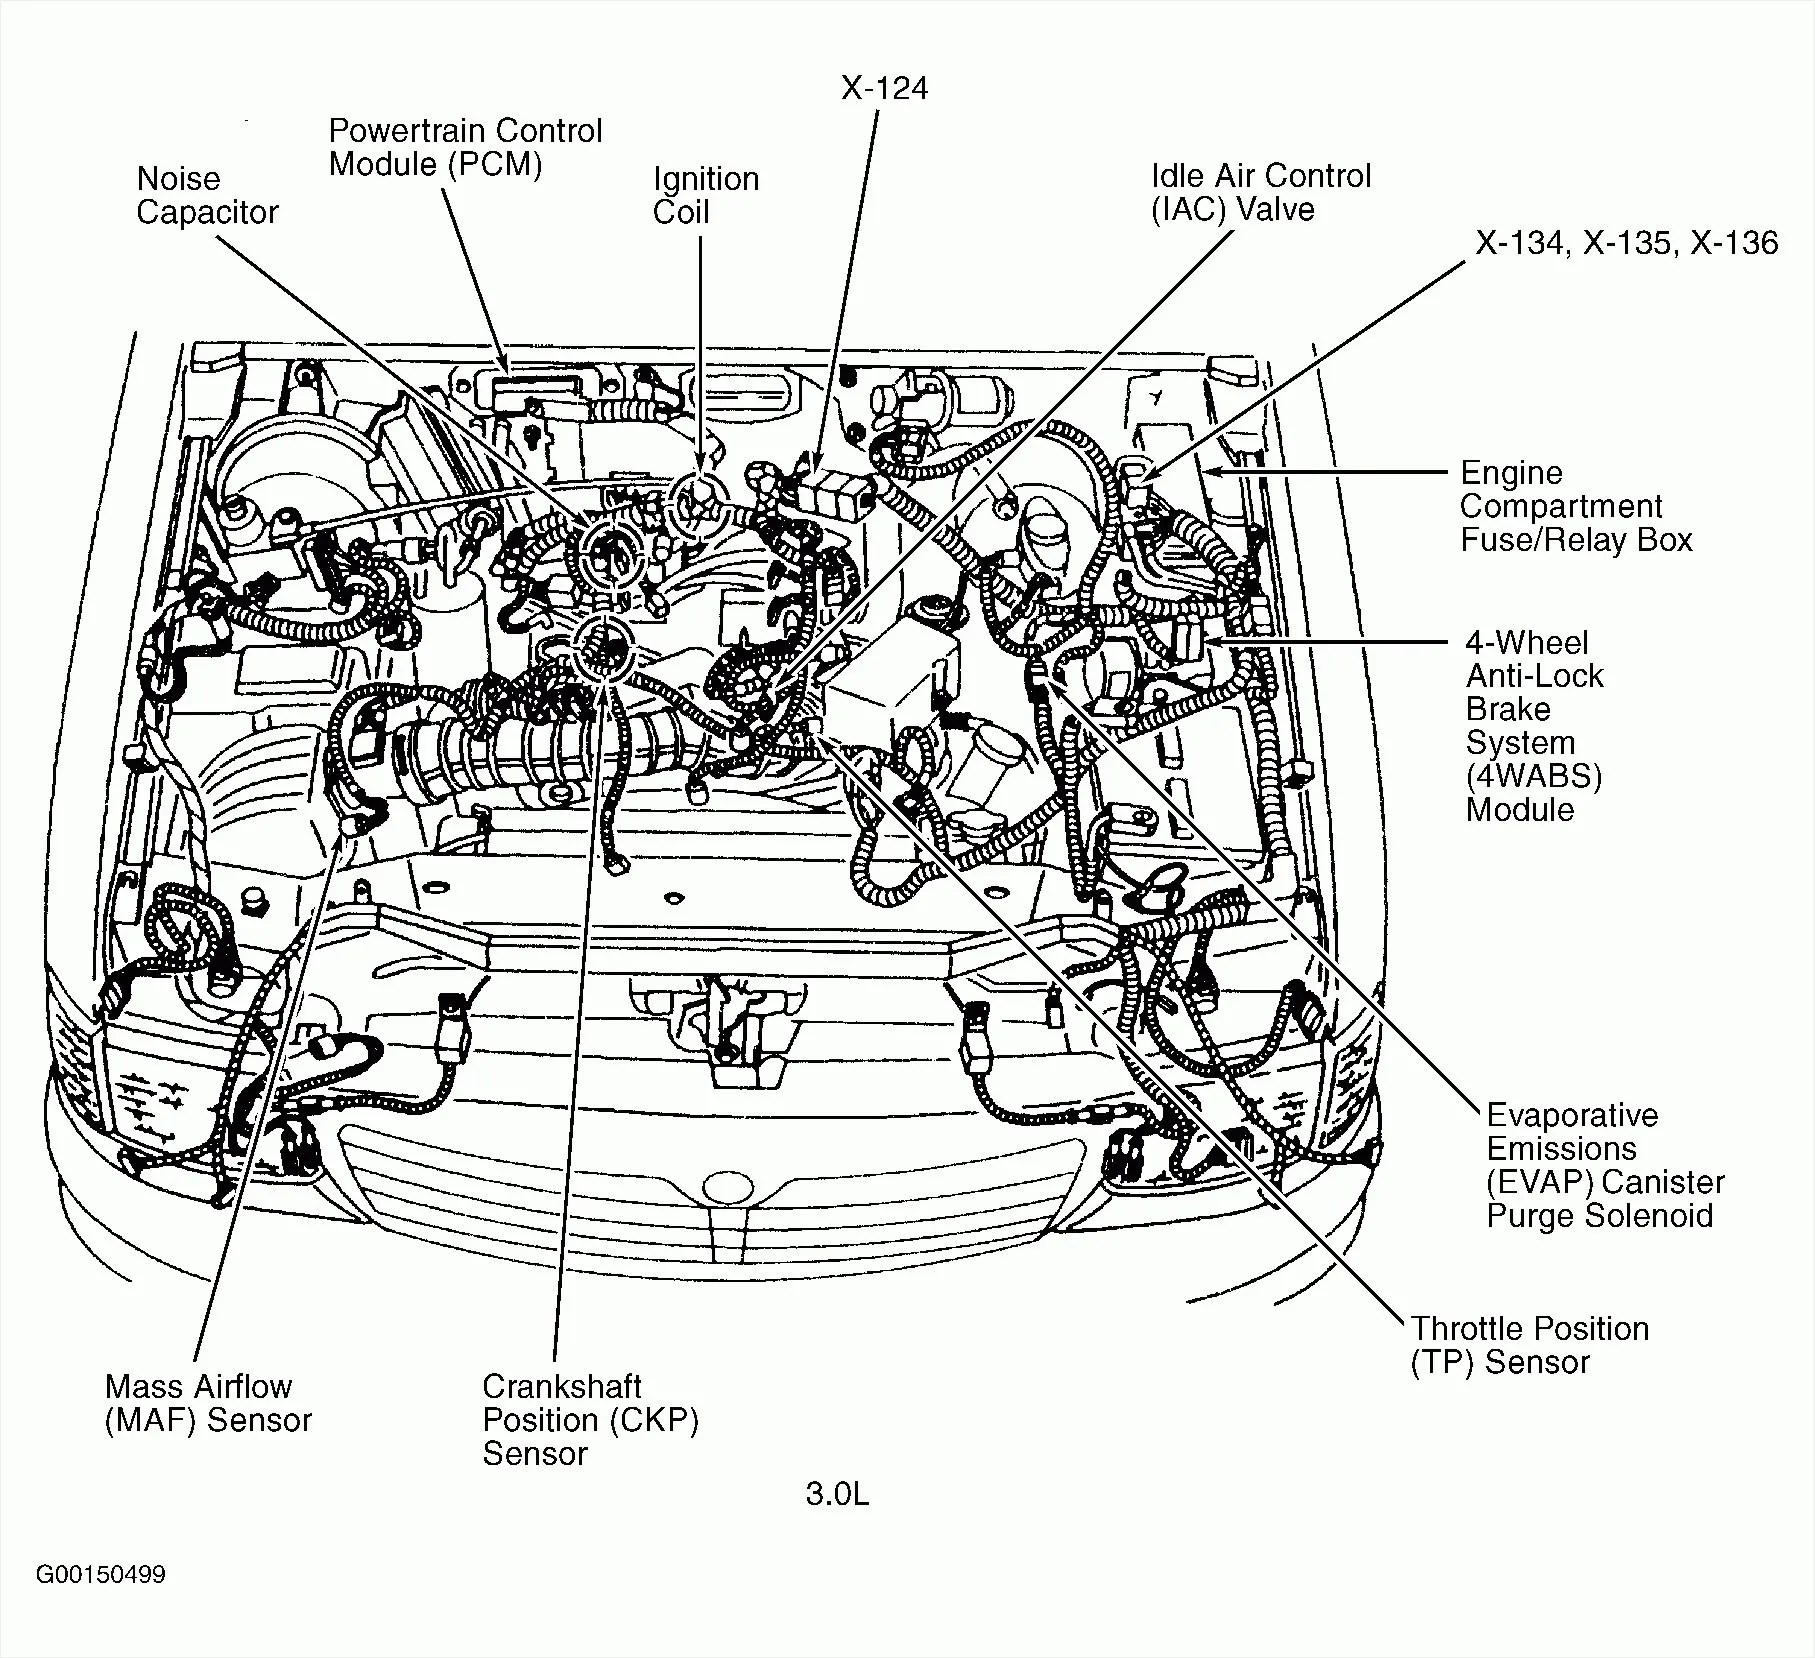 hight resolution of honda 2 engine diagram wiring diagram img 2000 honda accord 2 3 vtec engine diagram on